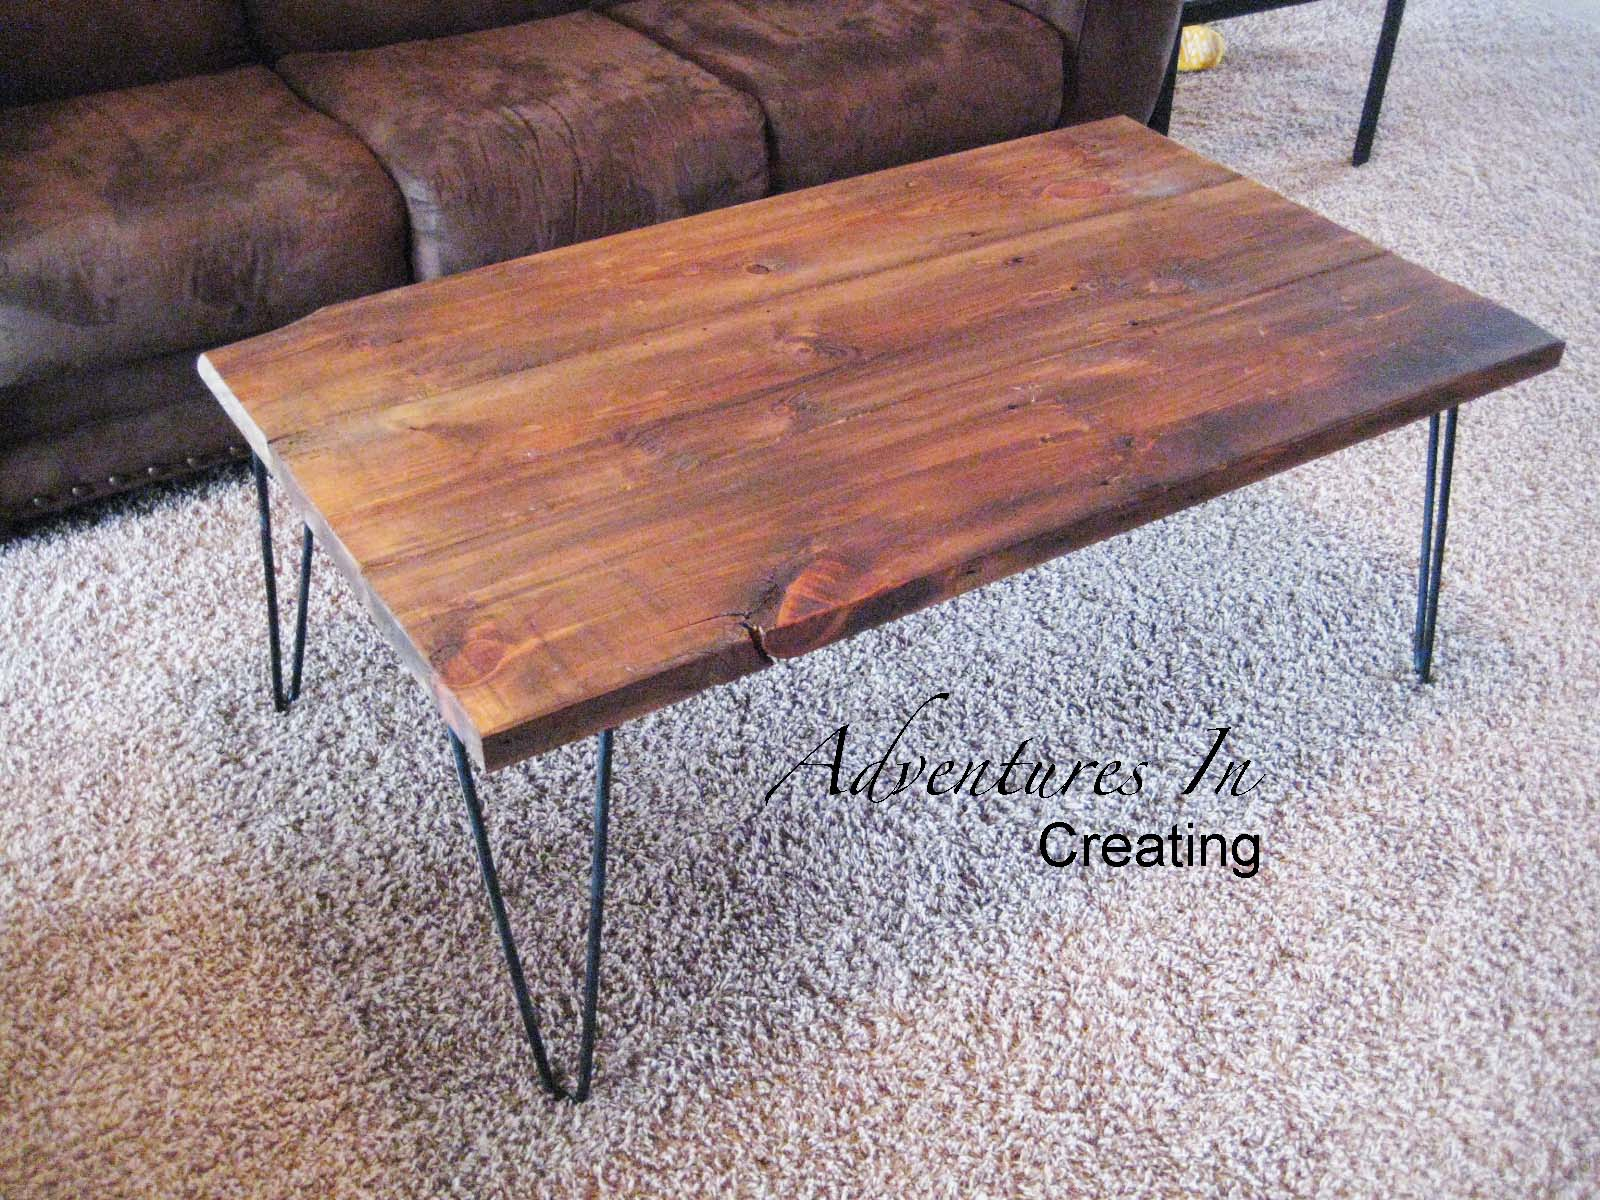 Good Wooden Coffee Table With Hairpin Legs, Adventures In Creating Via  Remodelaholic